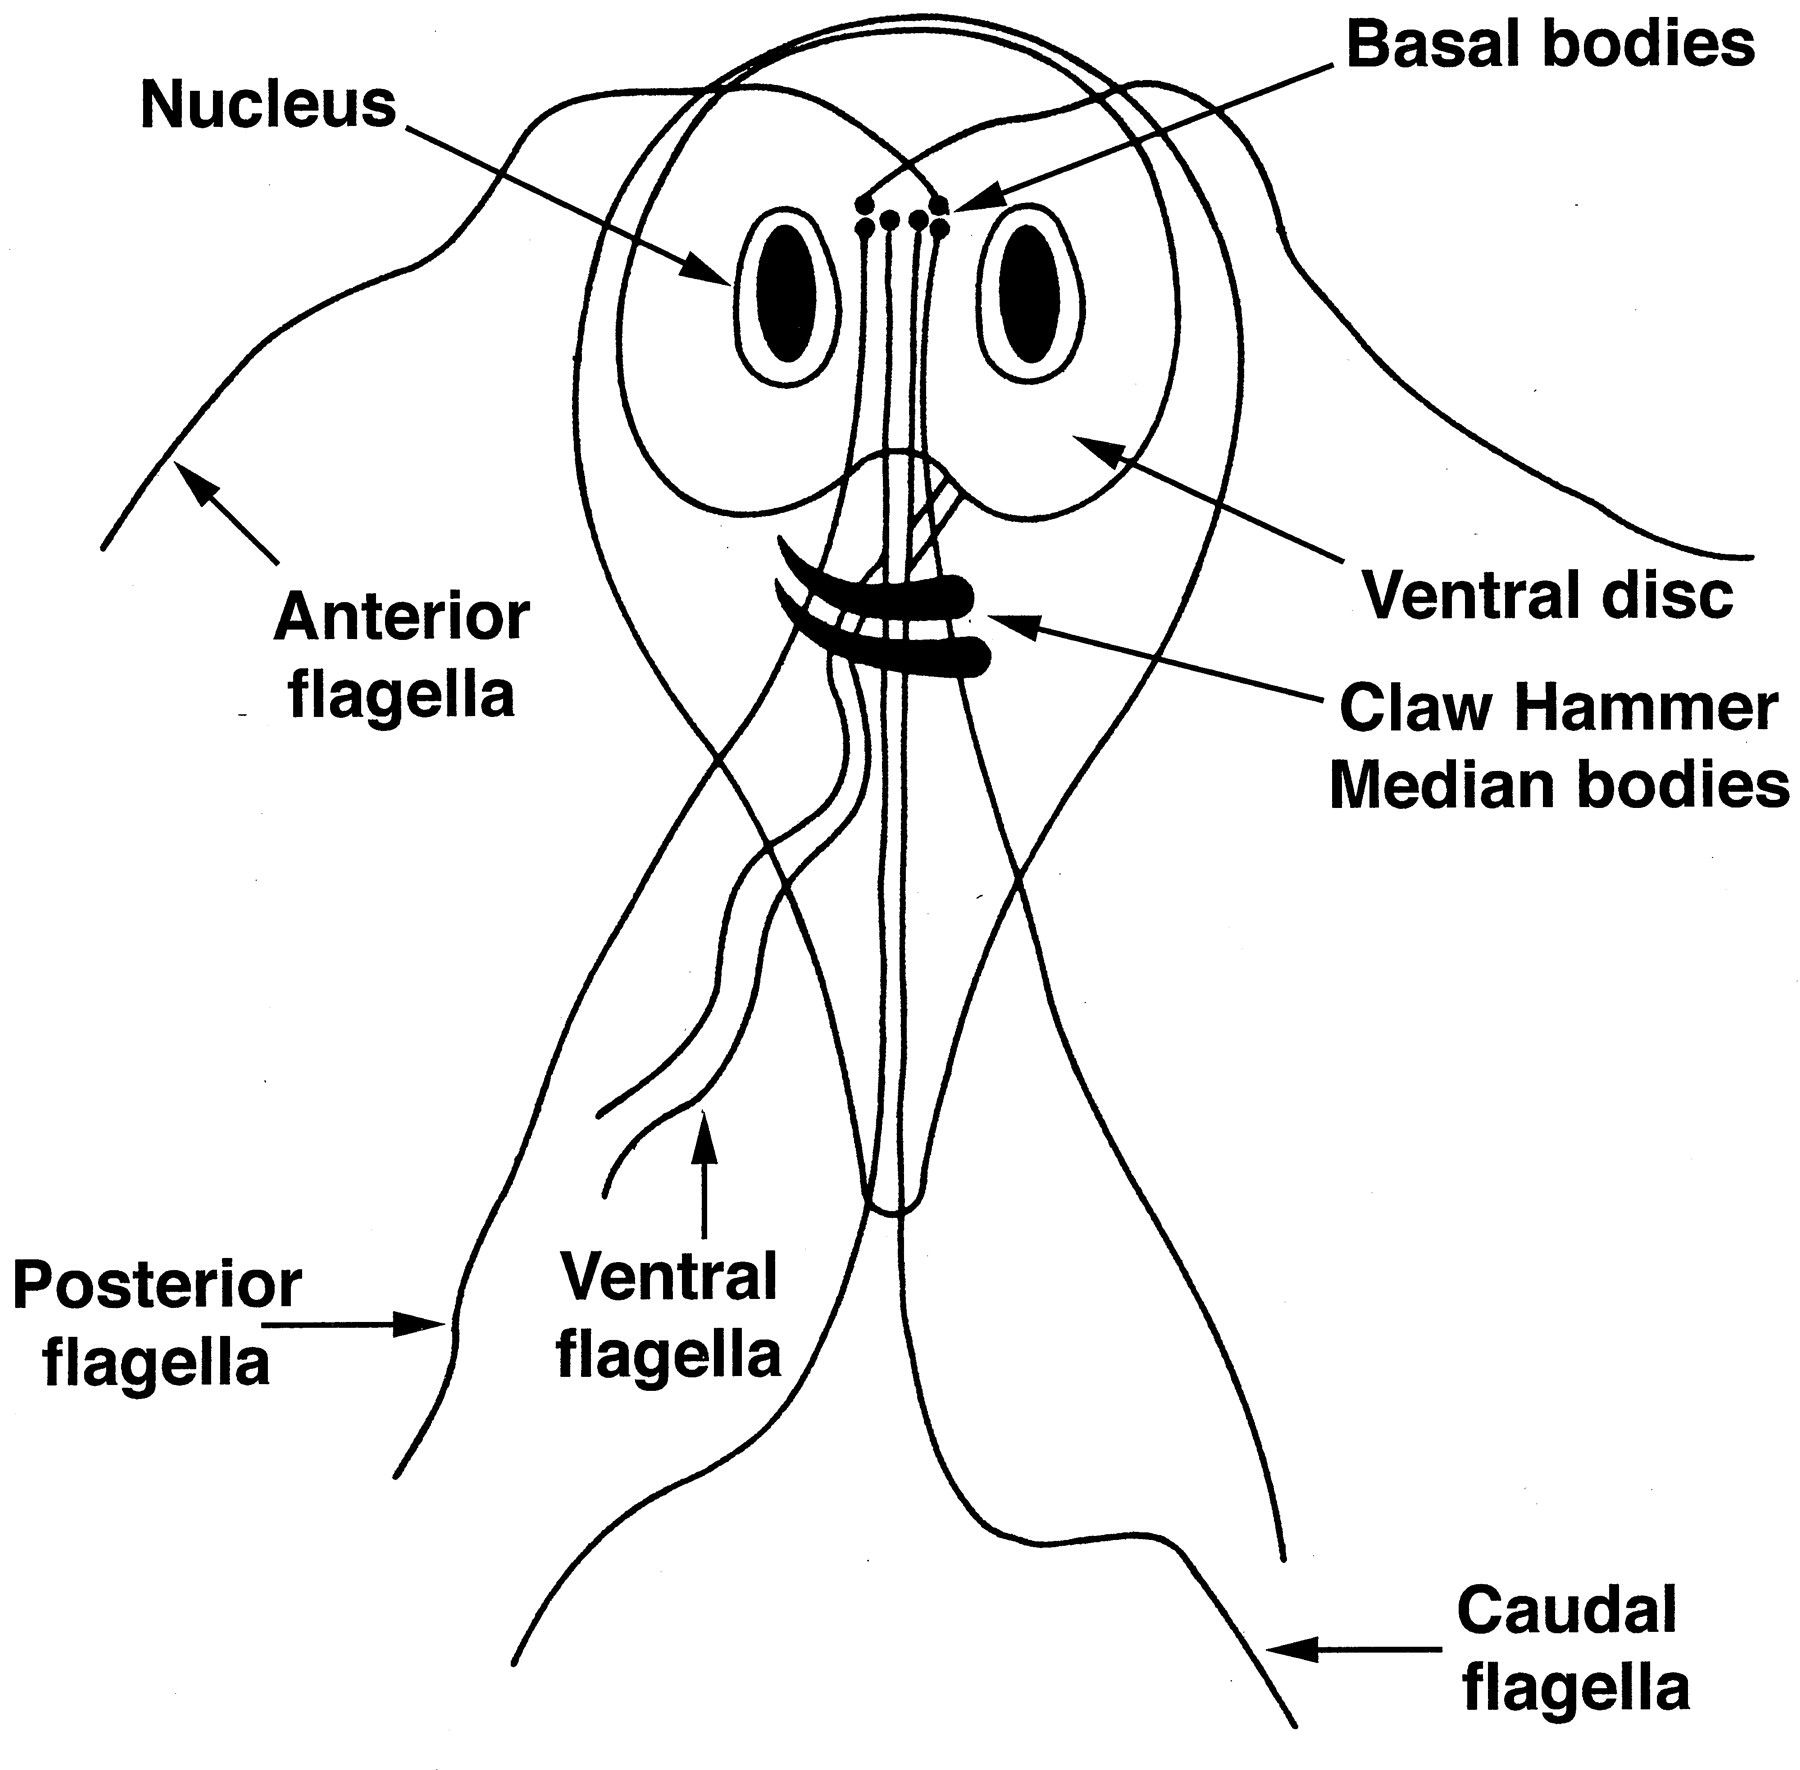 This Is An Image Of Giardia Giardiasis Is A Disease In Your Intestince With Parasites If You